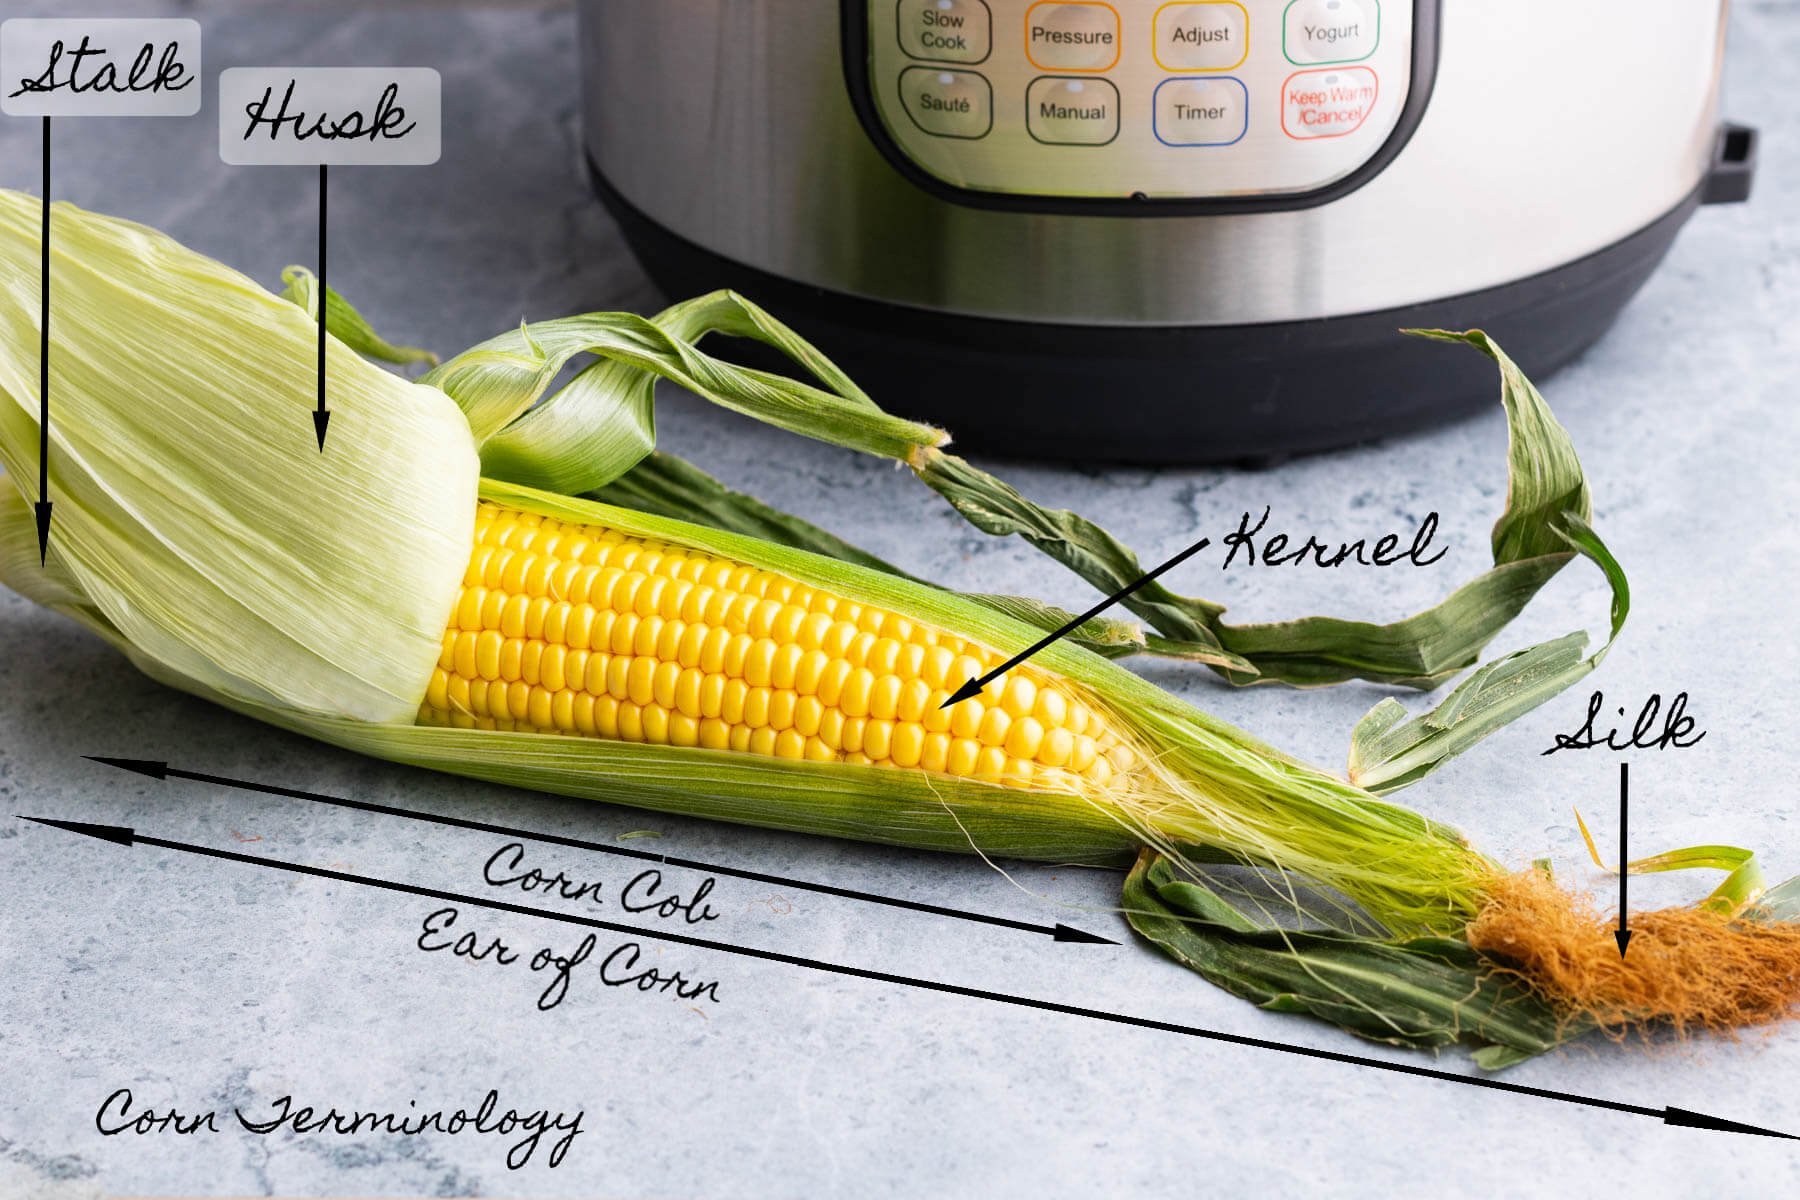 A half shucked ear of corn labelled with names of each part.